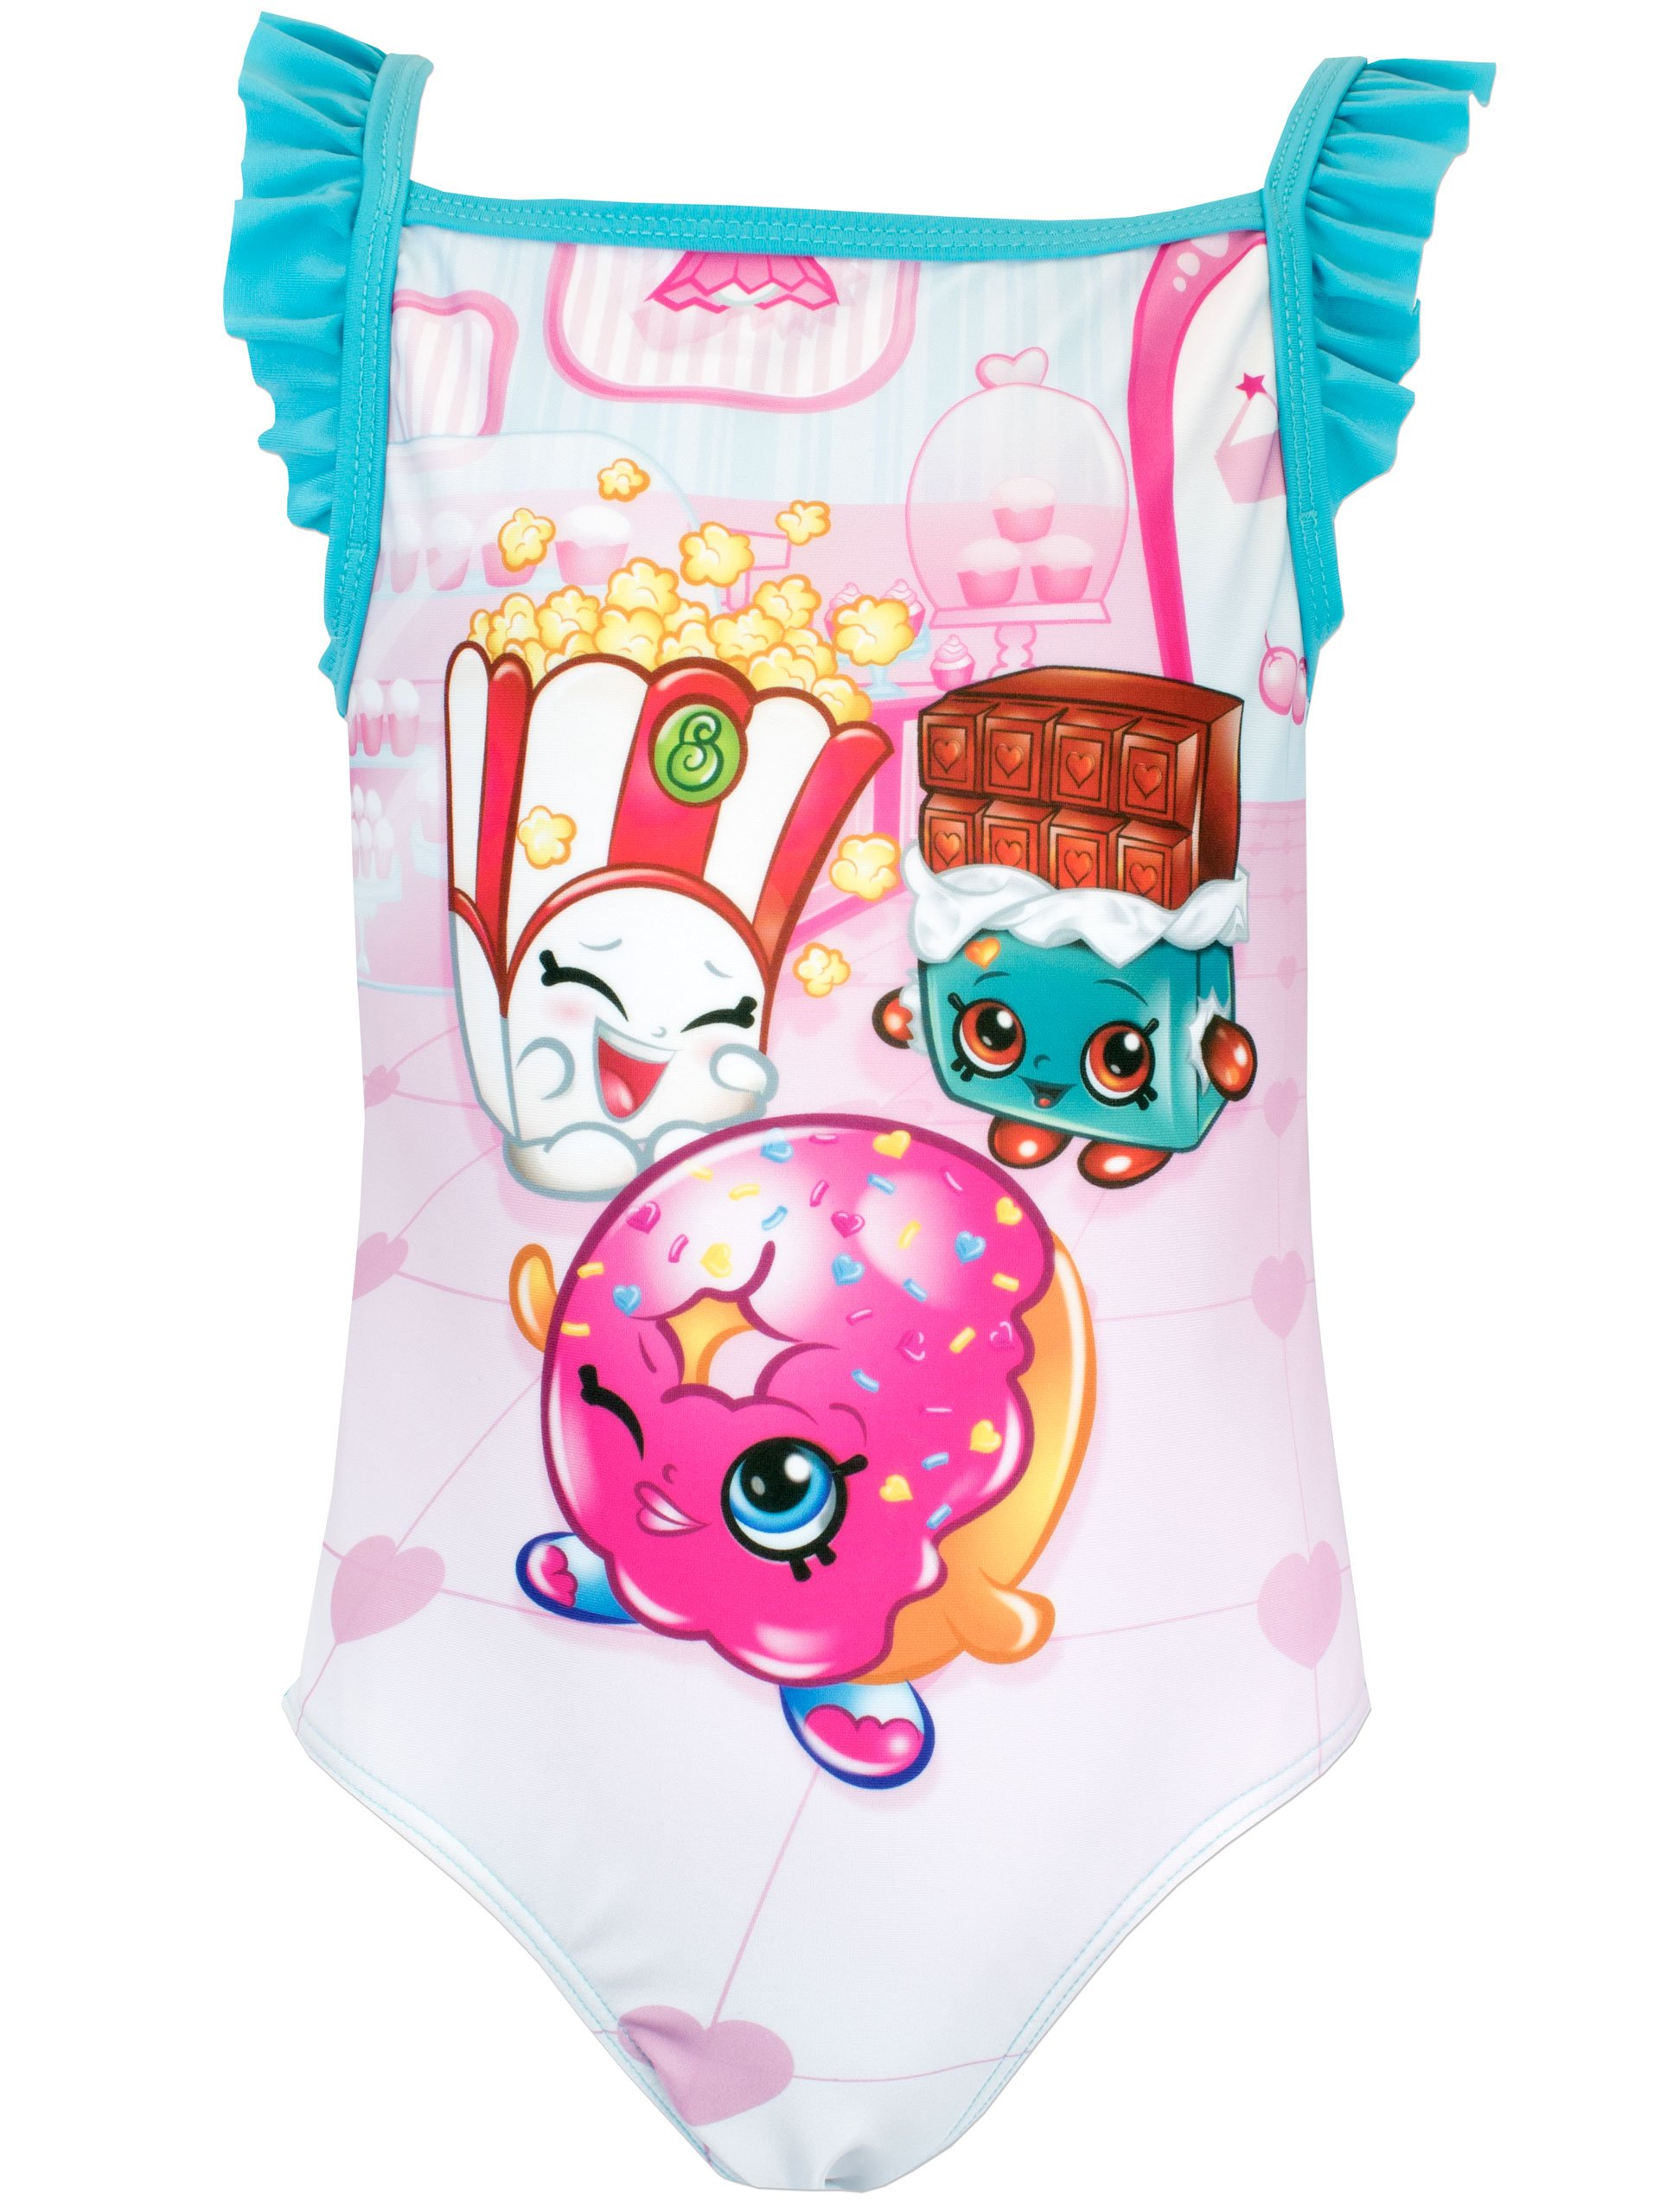 Shopkins Girls Donna Donut & Cheeky Chocolate Swimsuit Size 7 by Shopkins (Image #1)